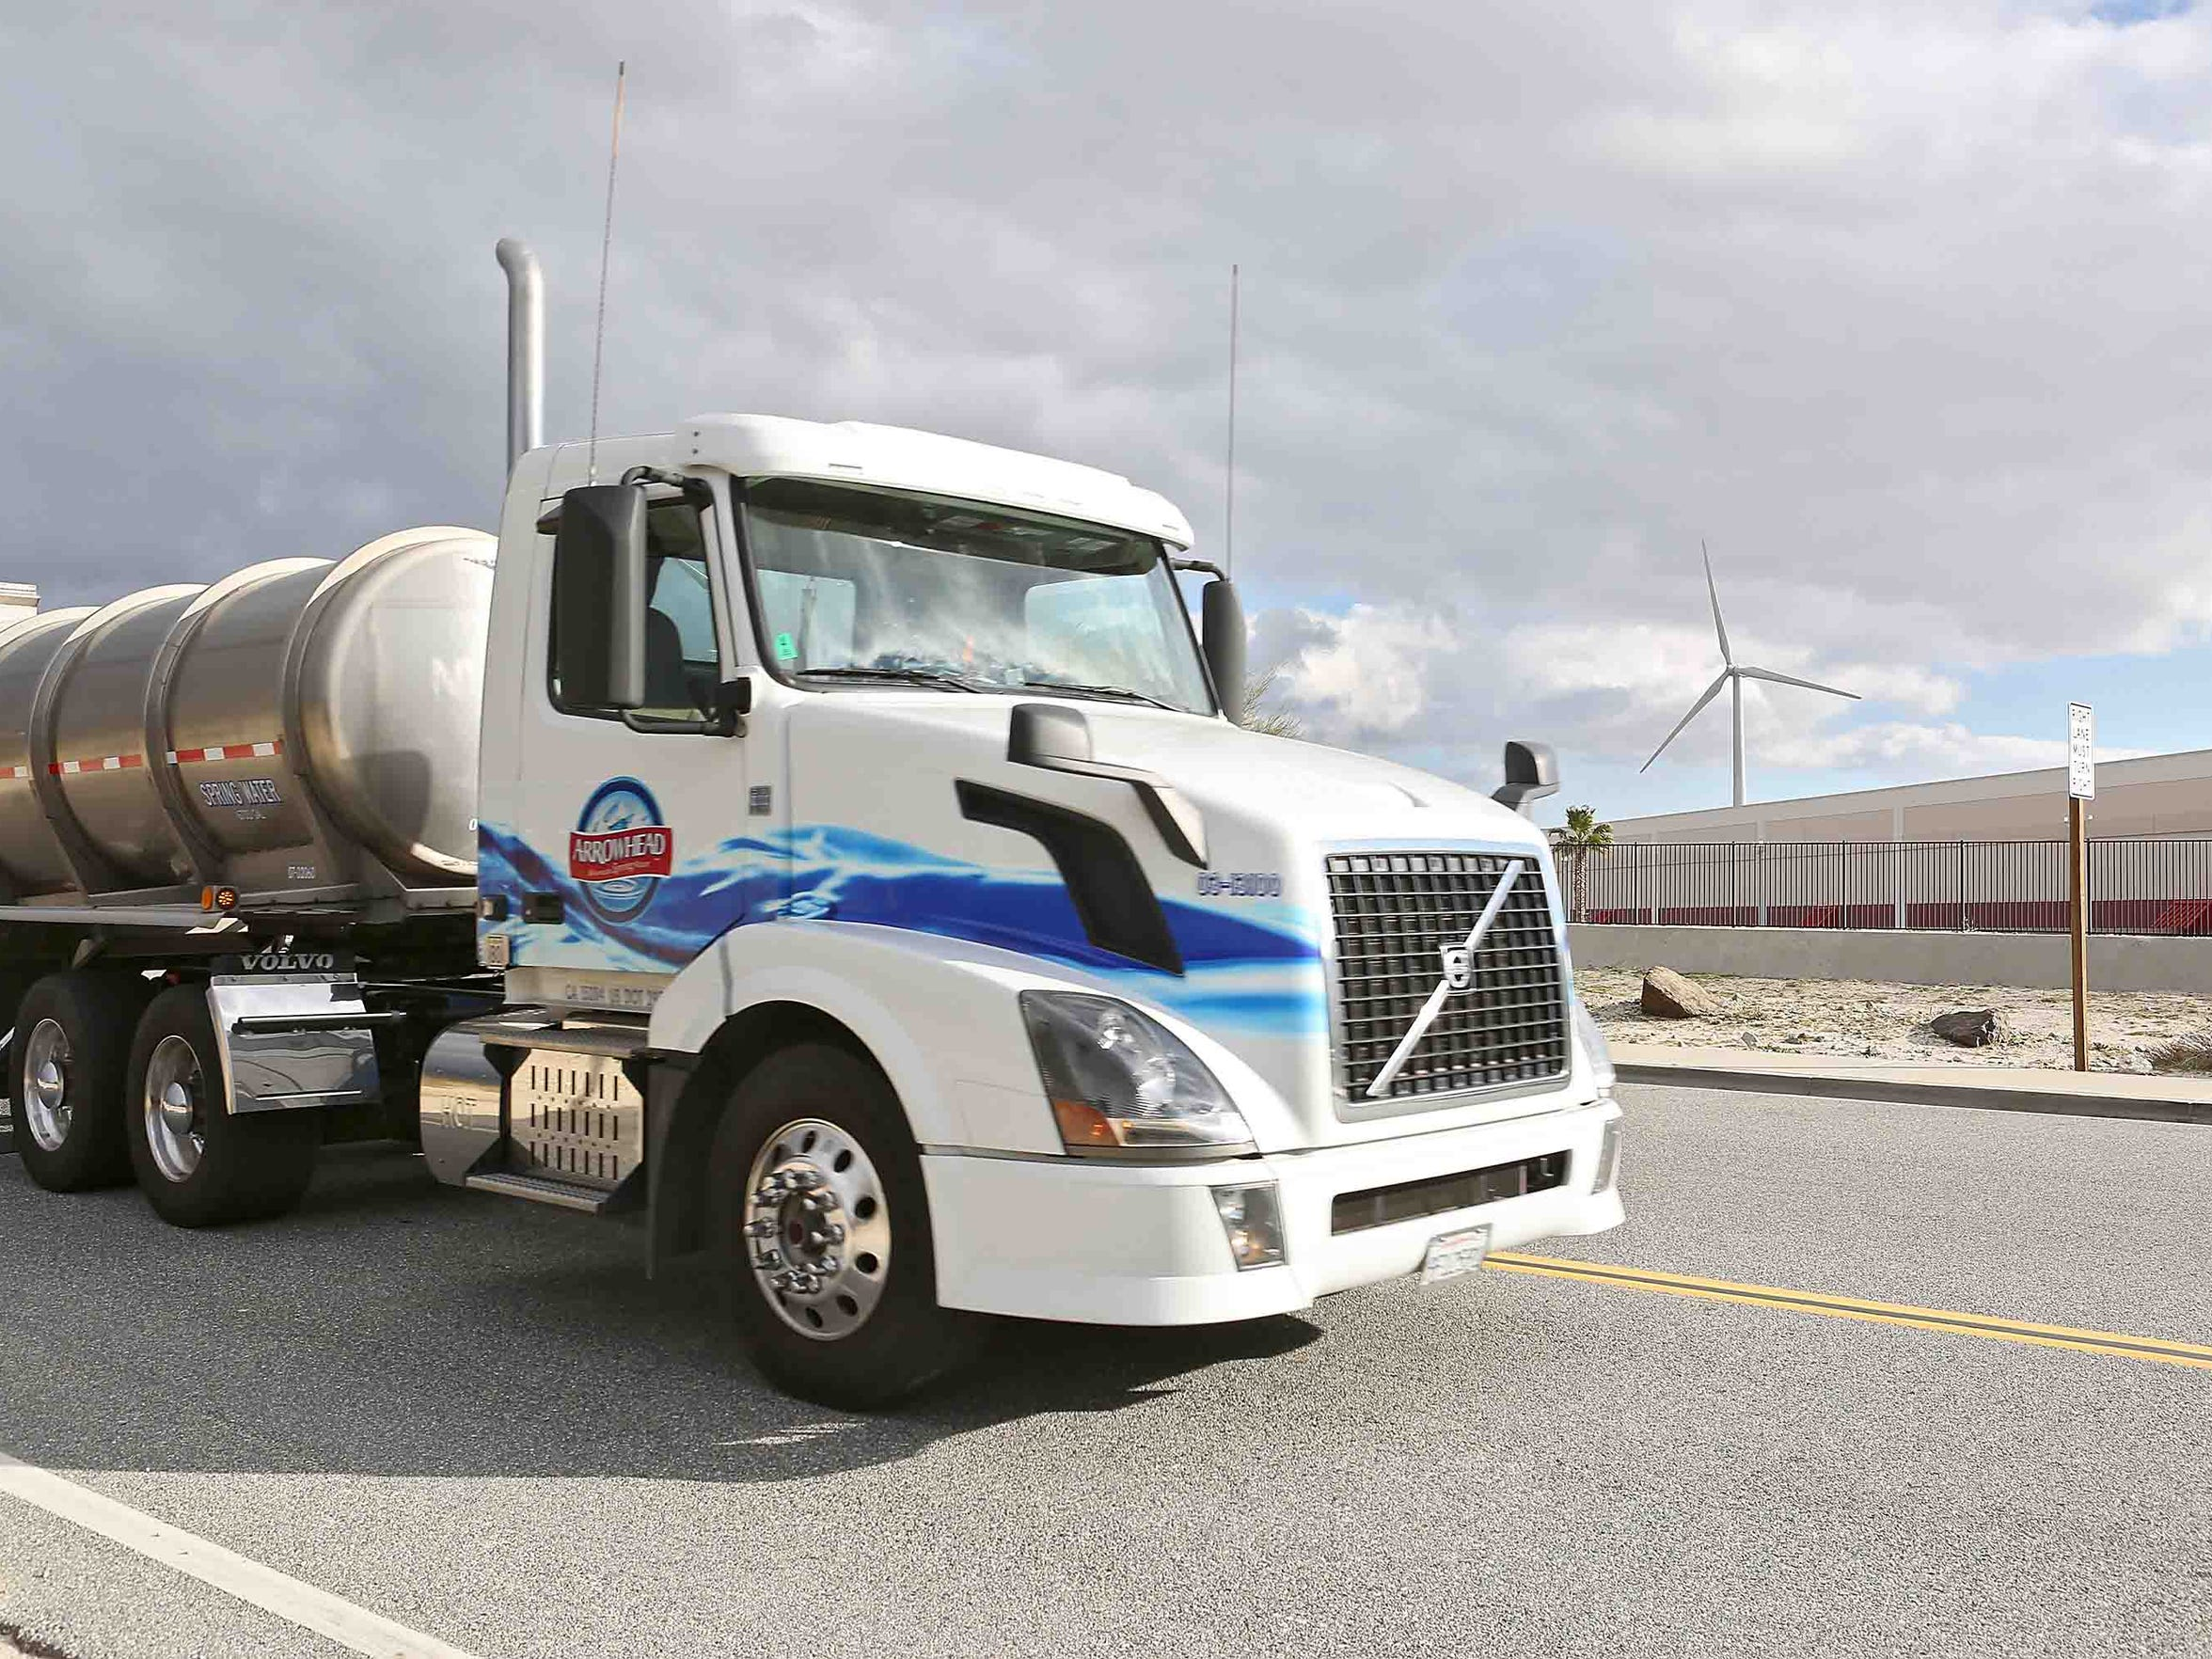 A truck carrying spring water enters the Arrowhead